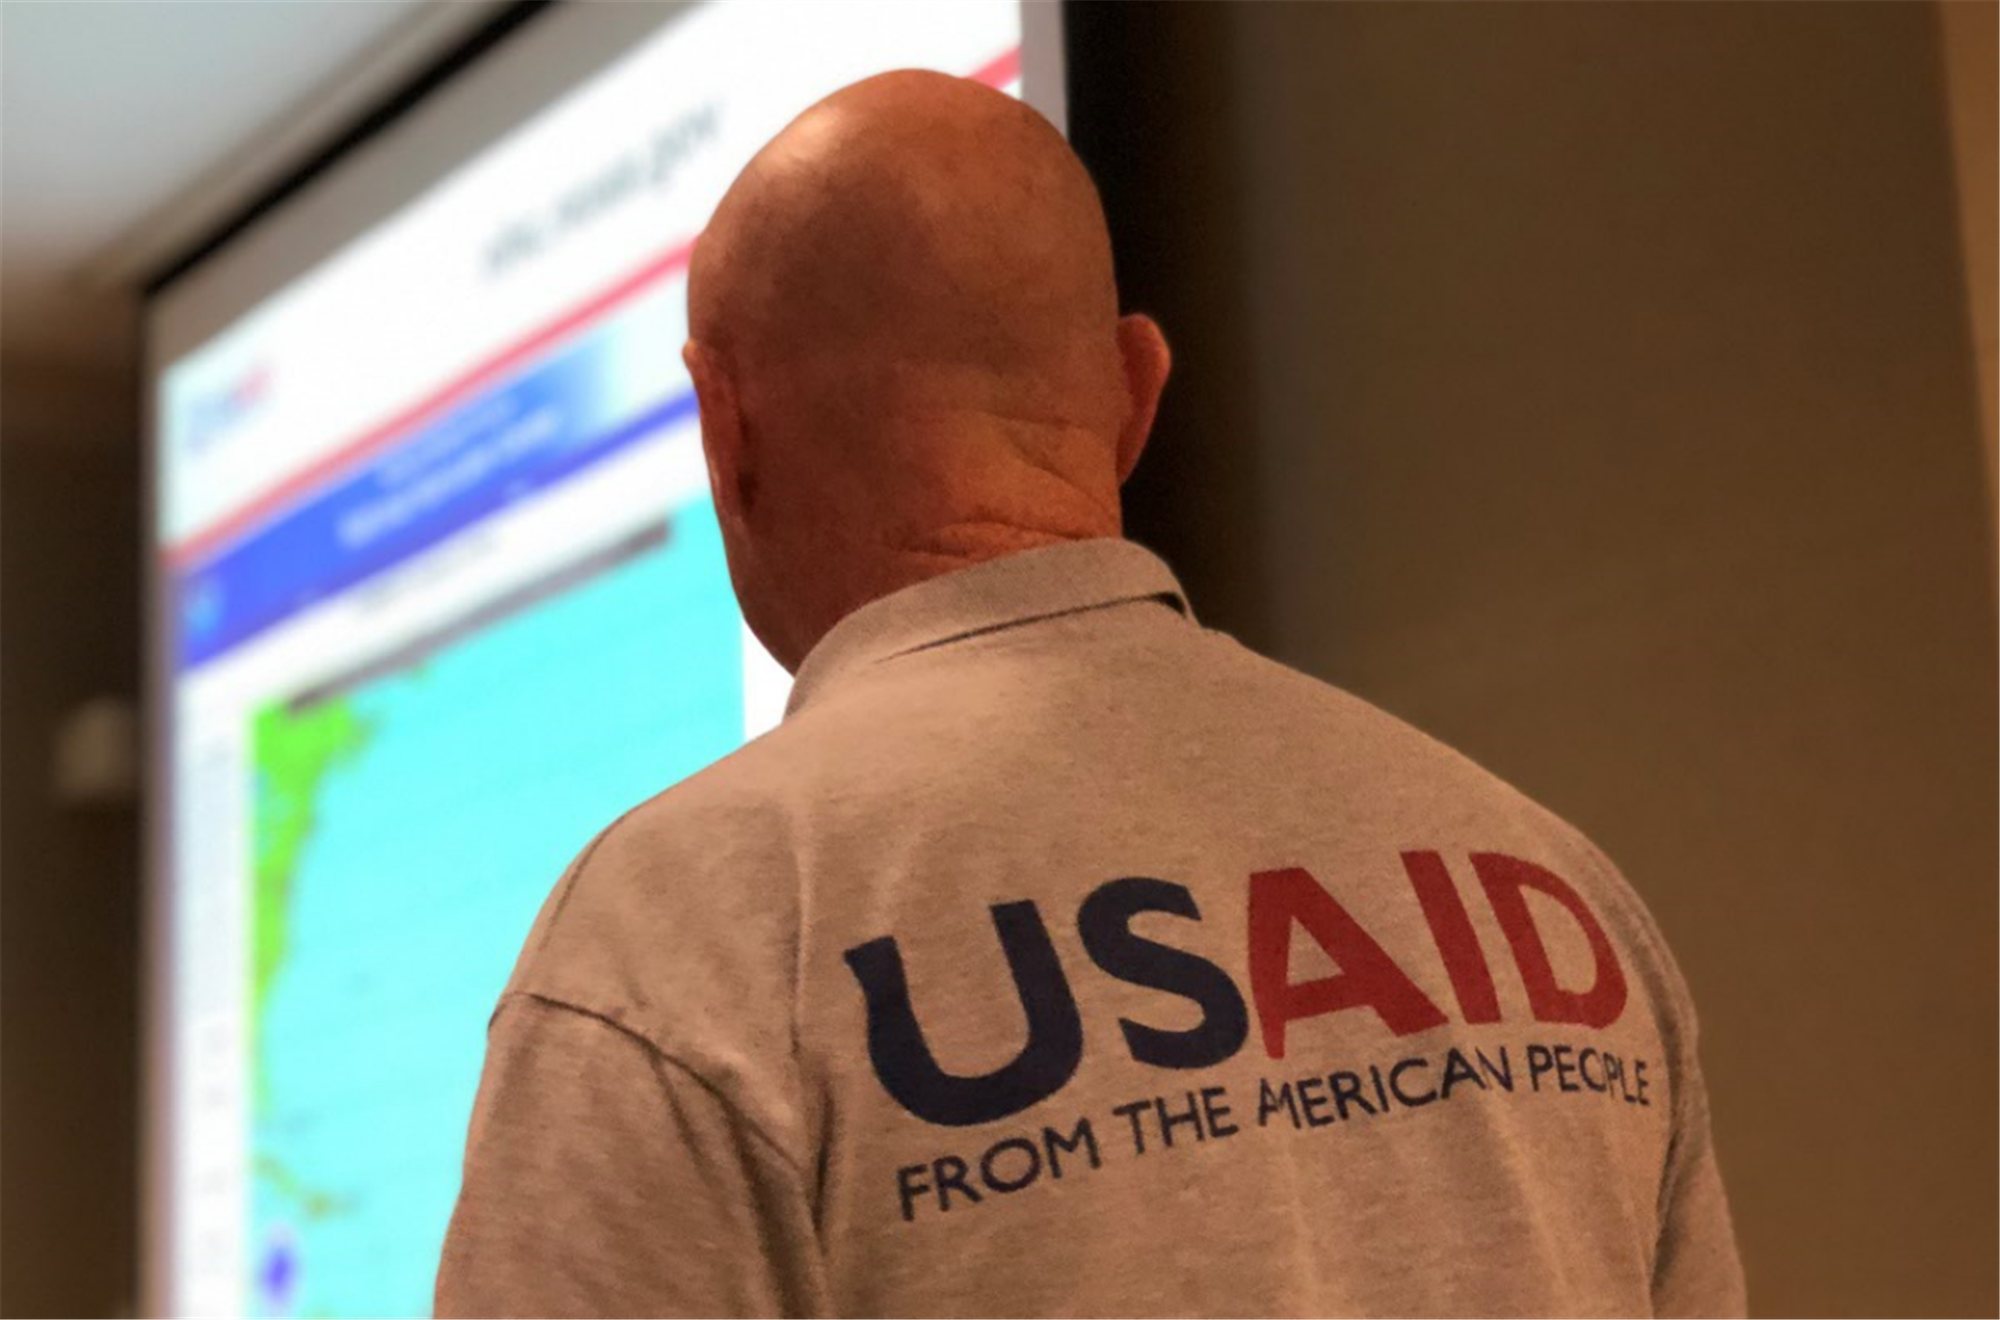 USAID instructor conducts the Joint Humanitarian Operations Course for U.S. Army Africa Command staff, Sep., 12-13, 2018, Vicenza, Italy. (Photo Courtesy of U.S. Army Africa Public Affairs)